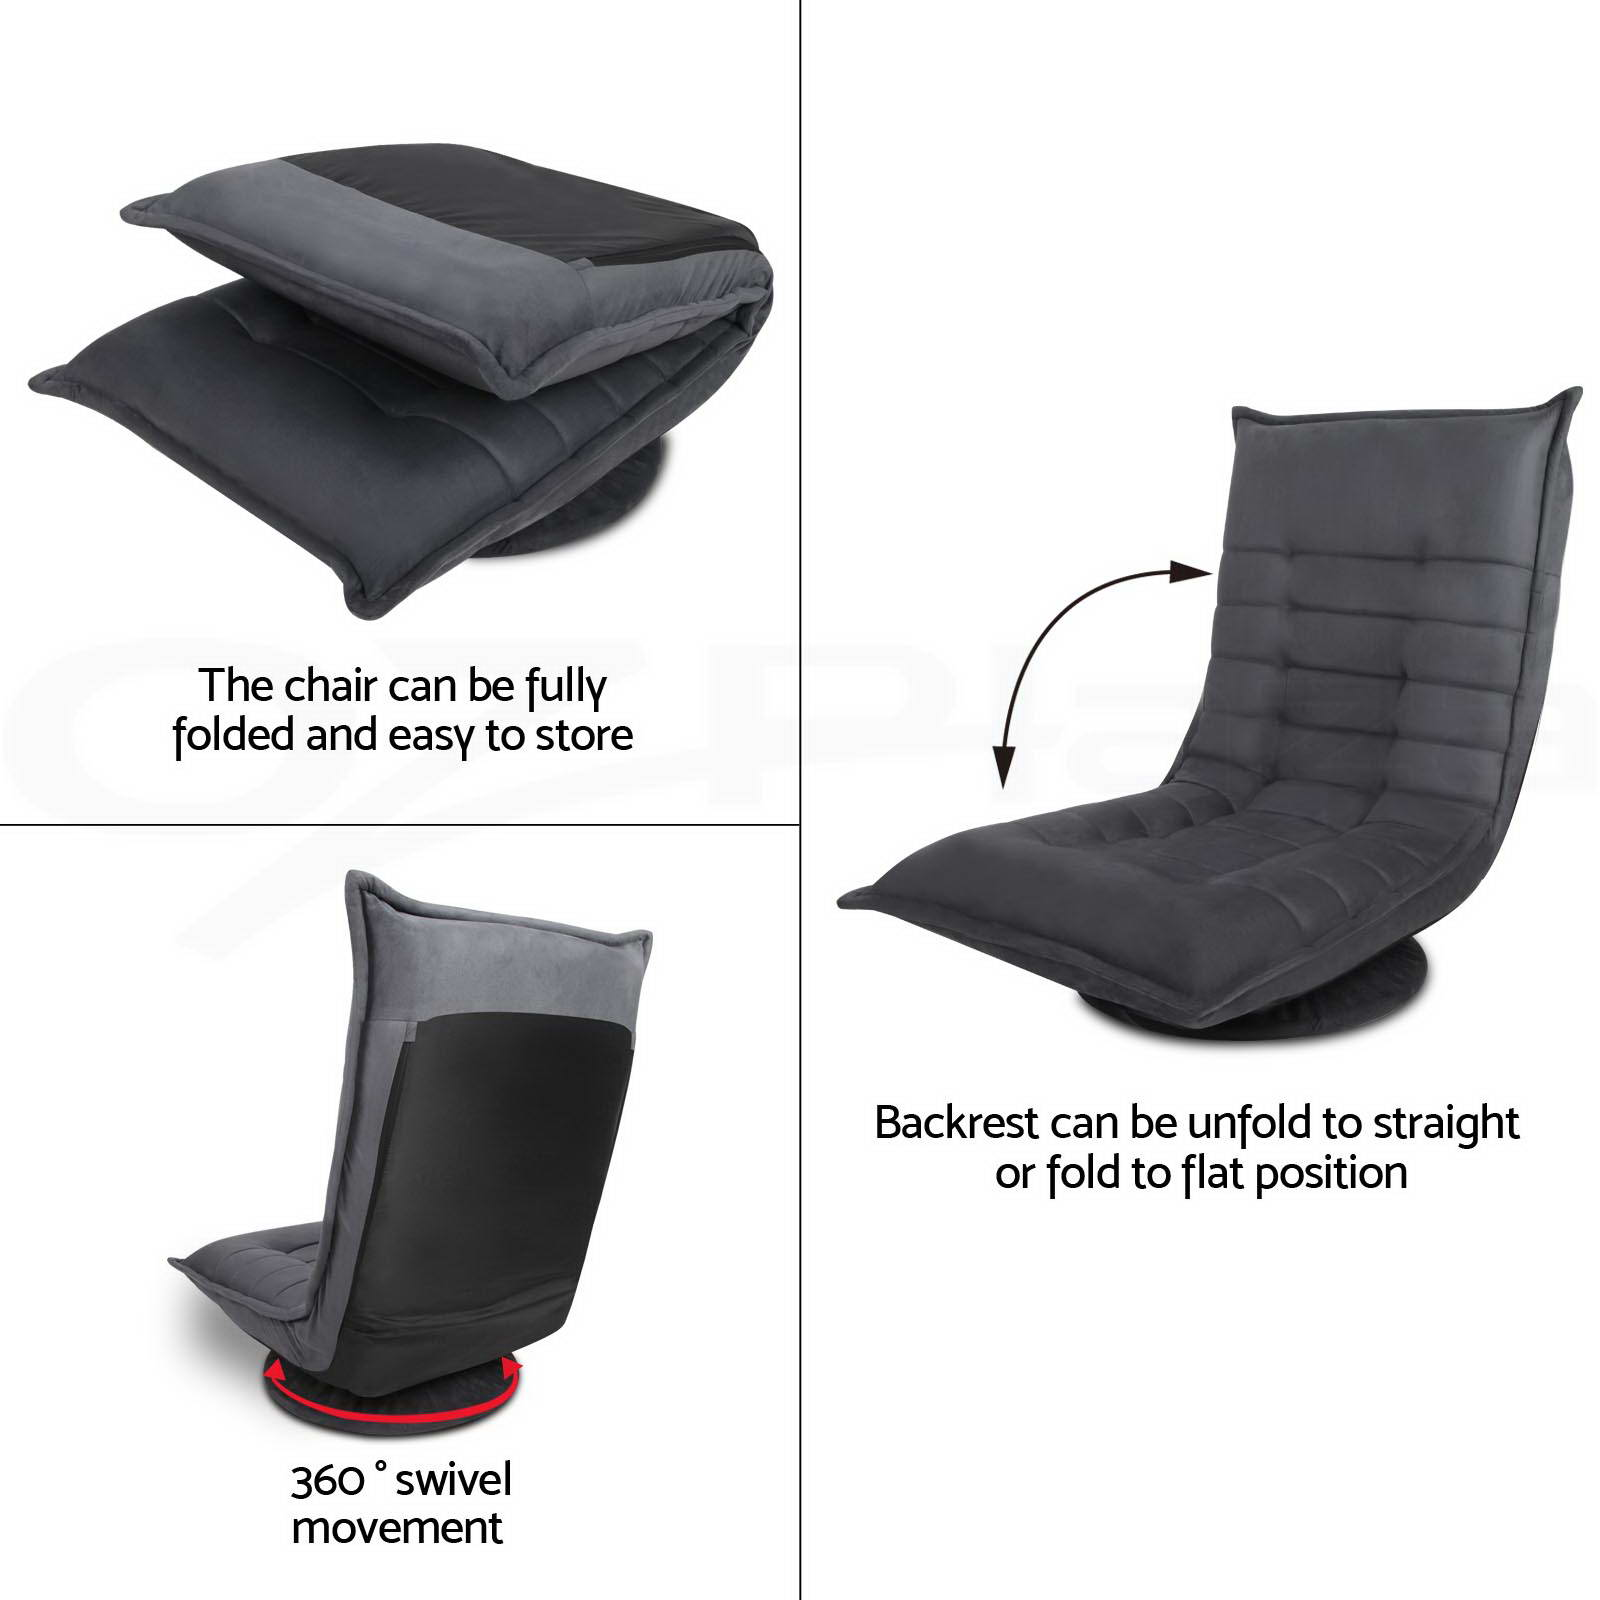 folding floor chair australia oxo tot sprout replacement shoulder straps single home lounge sofa bed recliner armchair